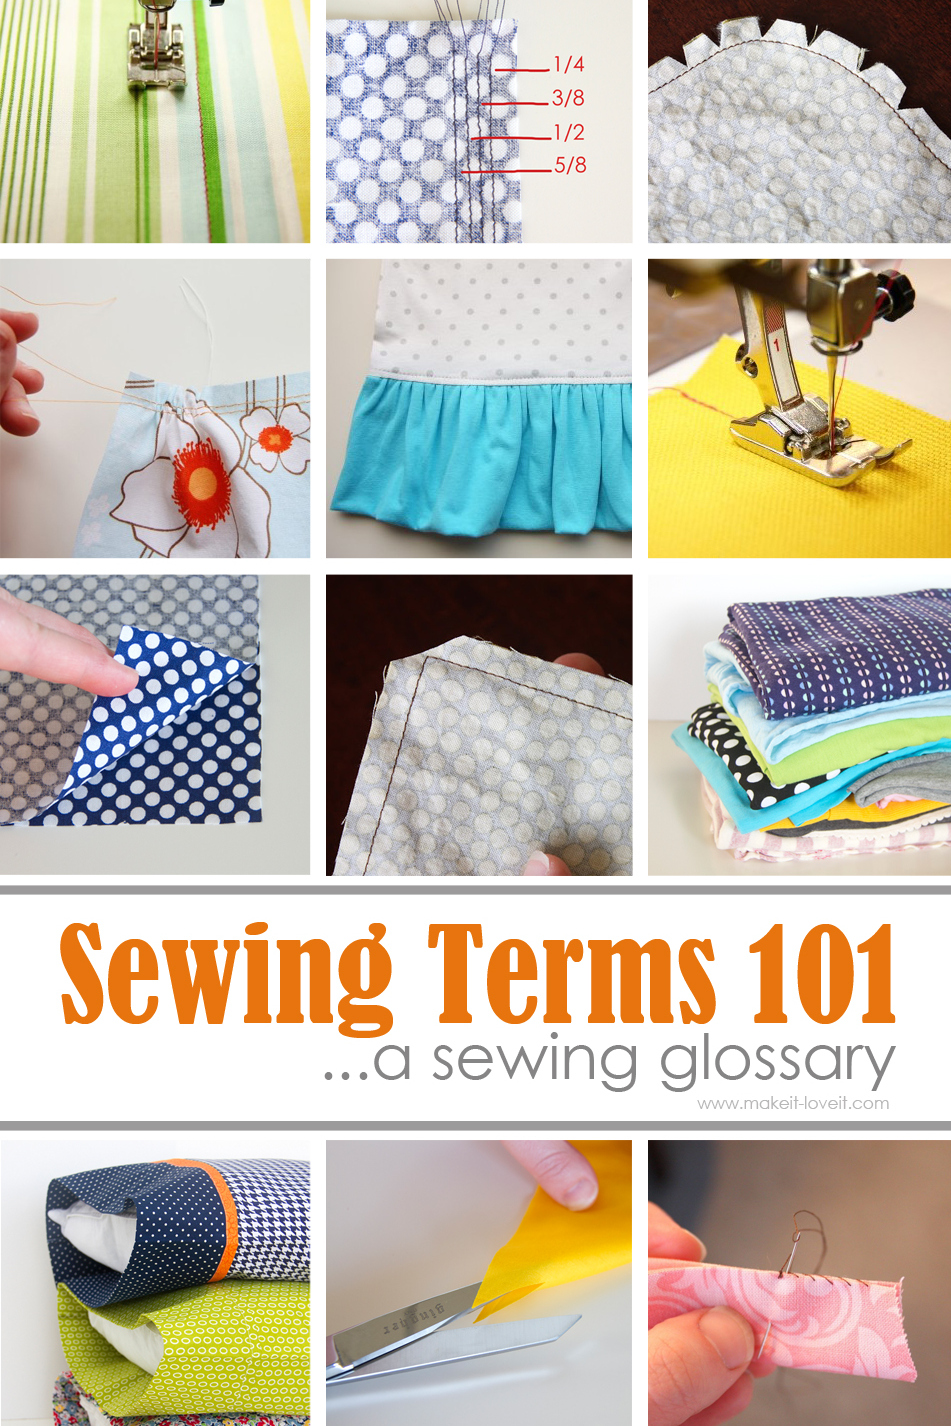 Sewing Terms 101 (…a beginner's sewing glossary)